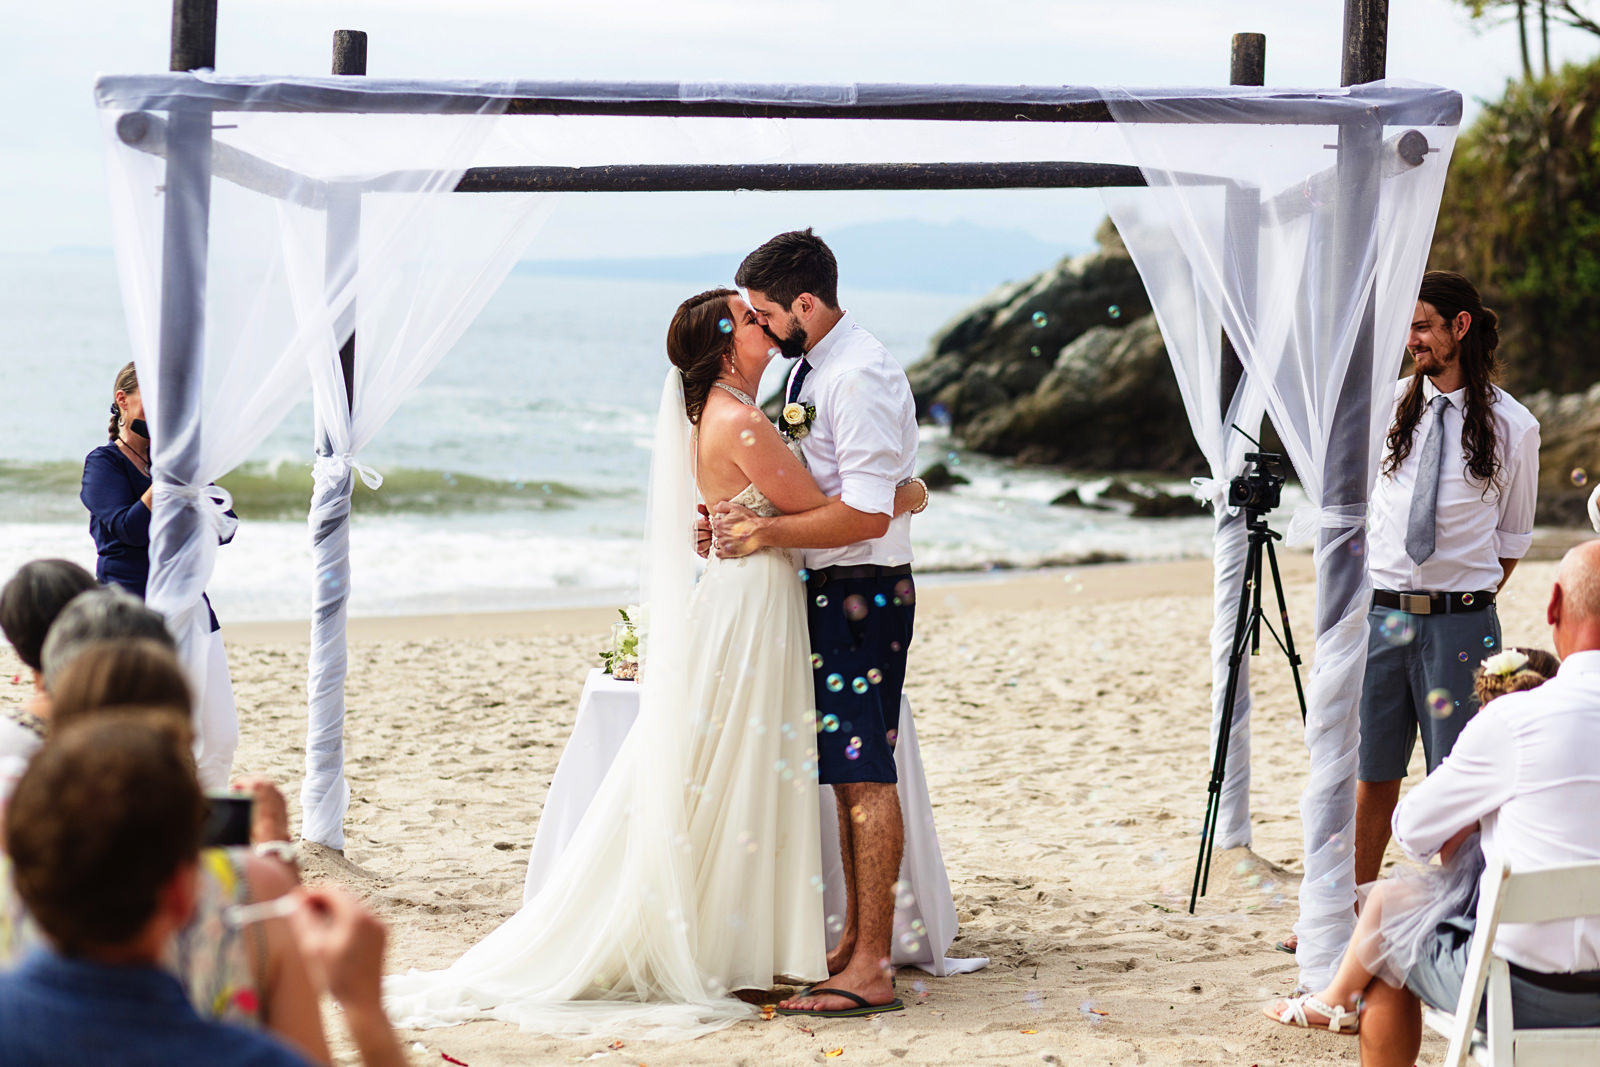 Bride and groom first kiss while the wedding guests blow bubbles at the end of their beach wedding ceremony.